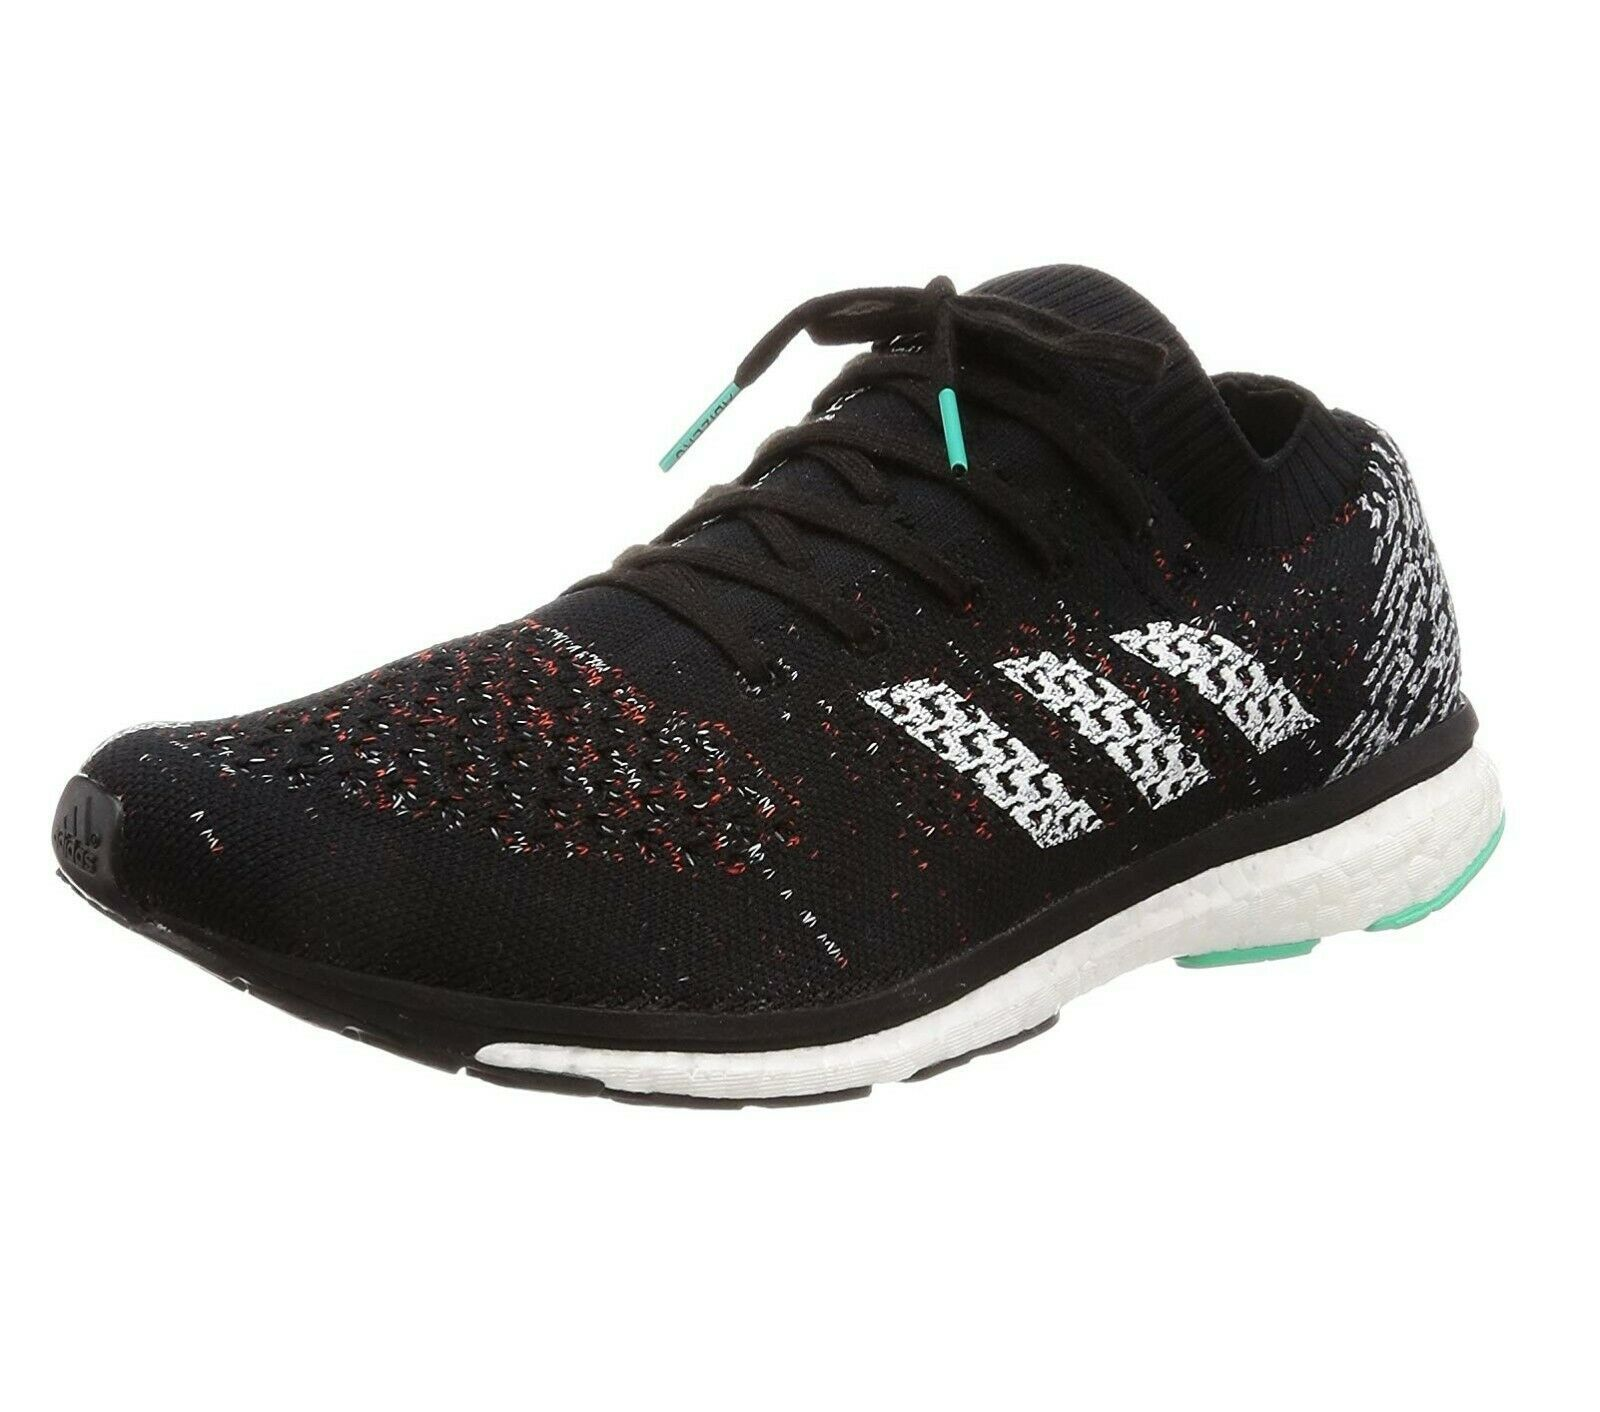 Adidas Adizero Prime Boost Limited Core Black White CP8922 Mens Running Shoes image 2